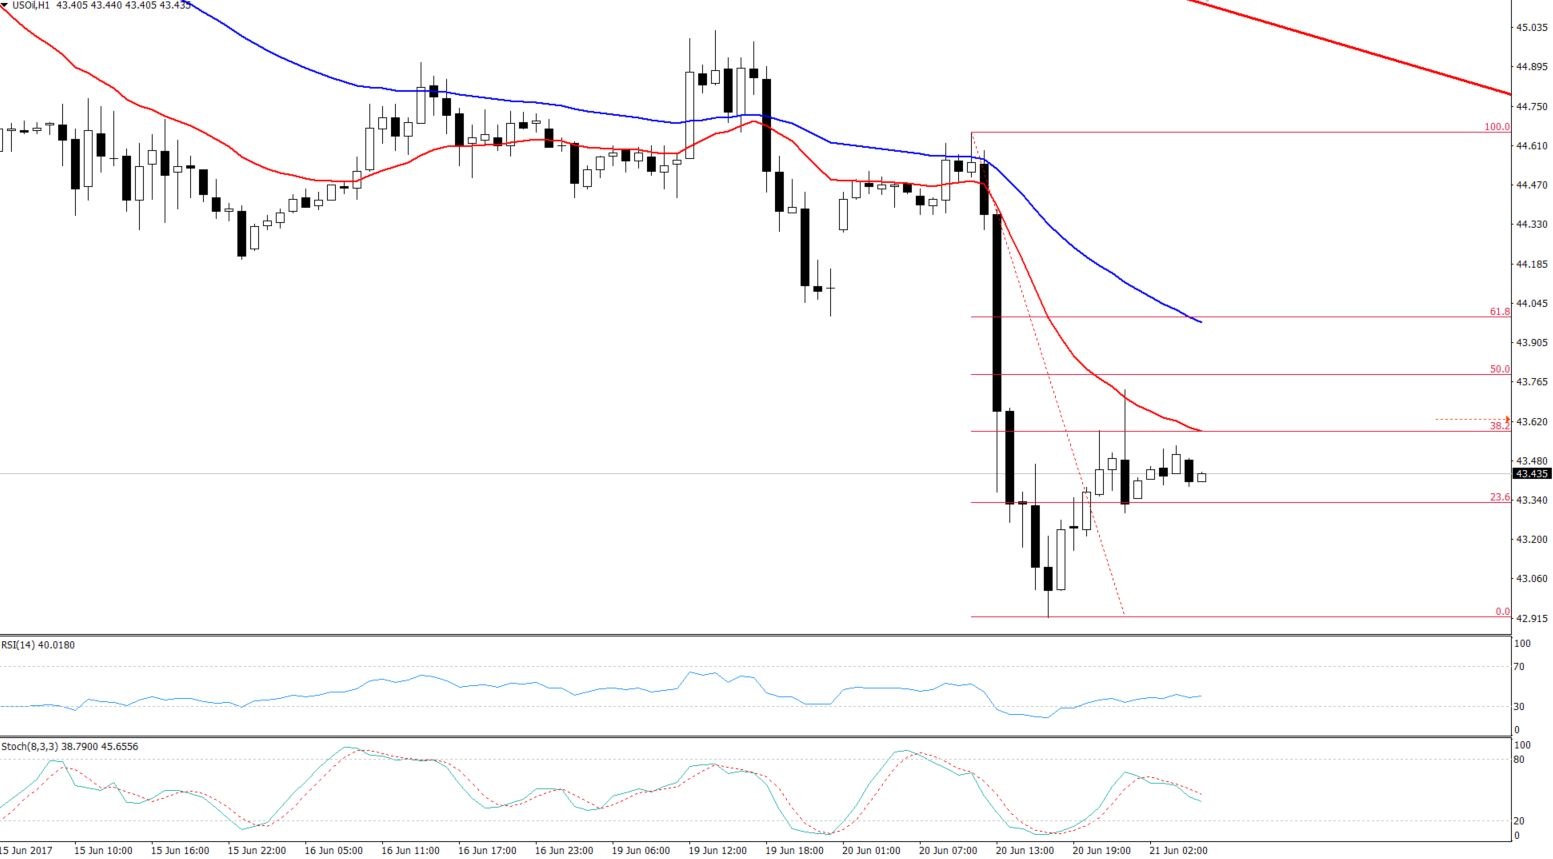 Crude Oil - Hourly Chart